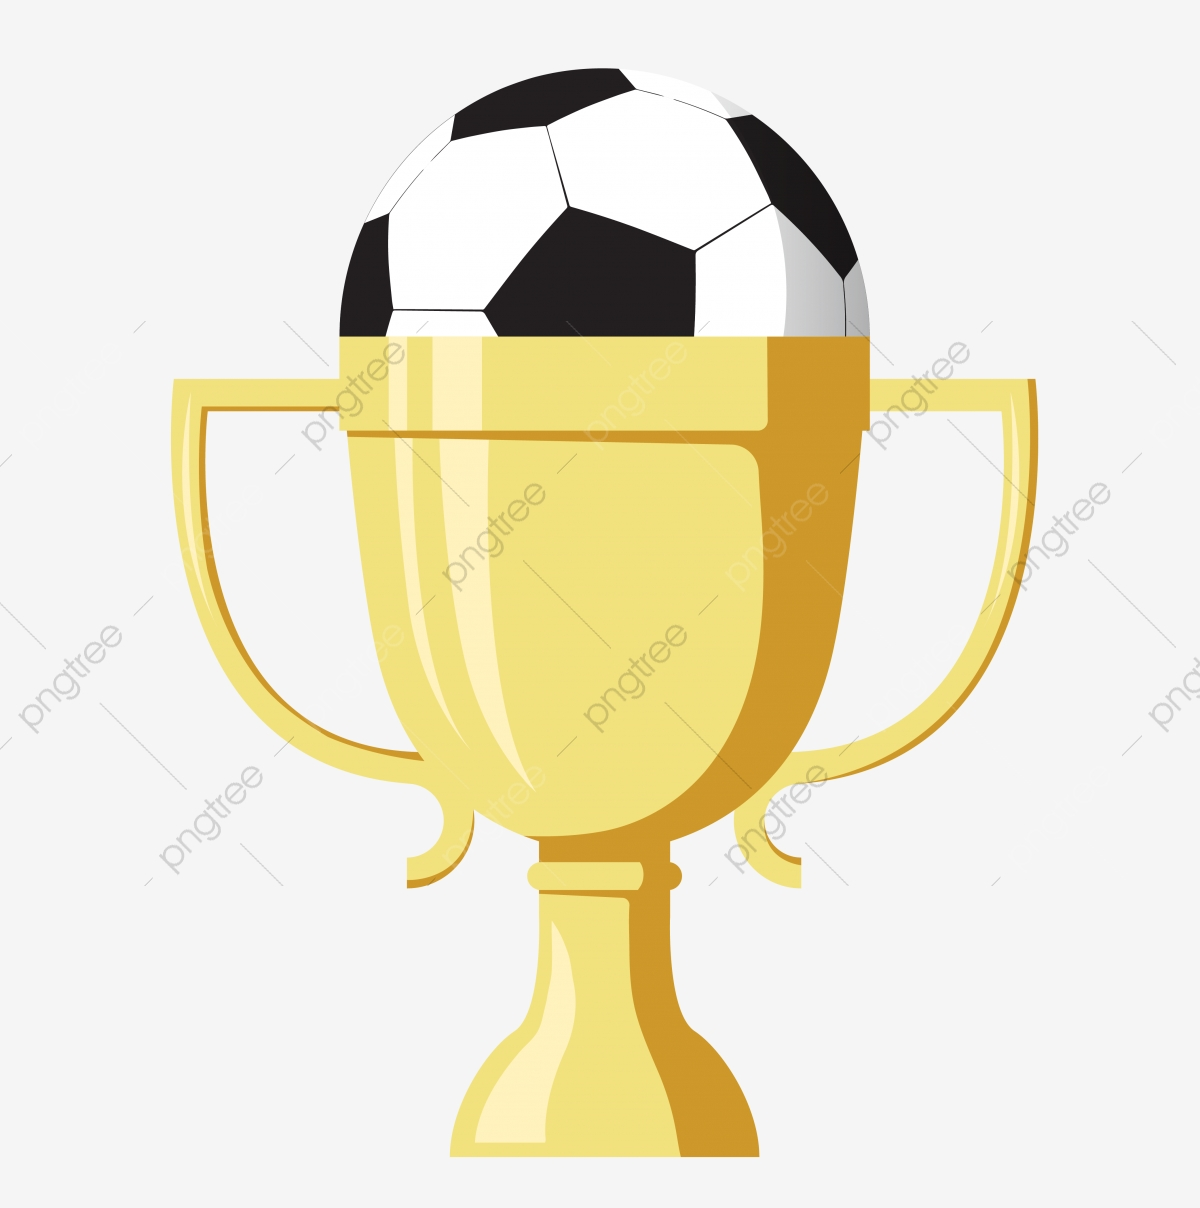 russia trophy design. Football world cup clipart